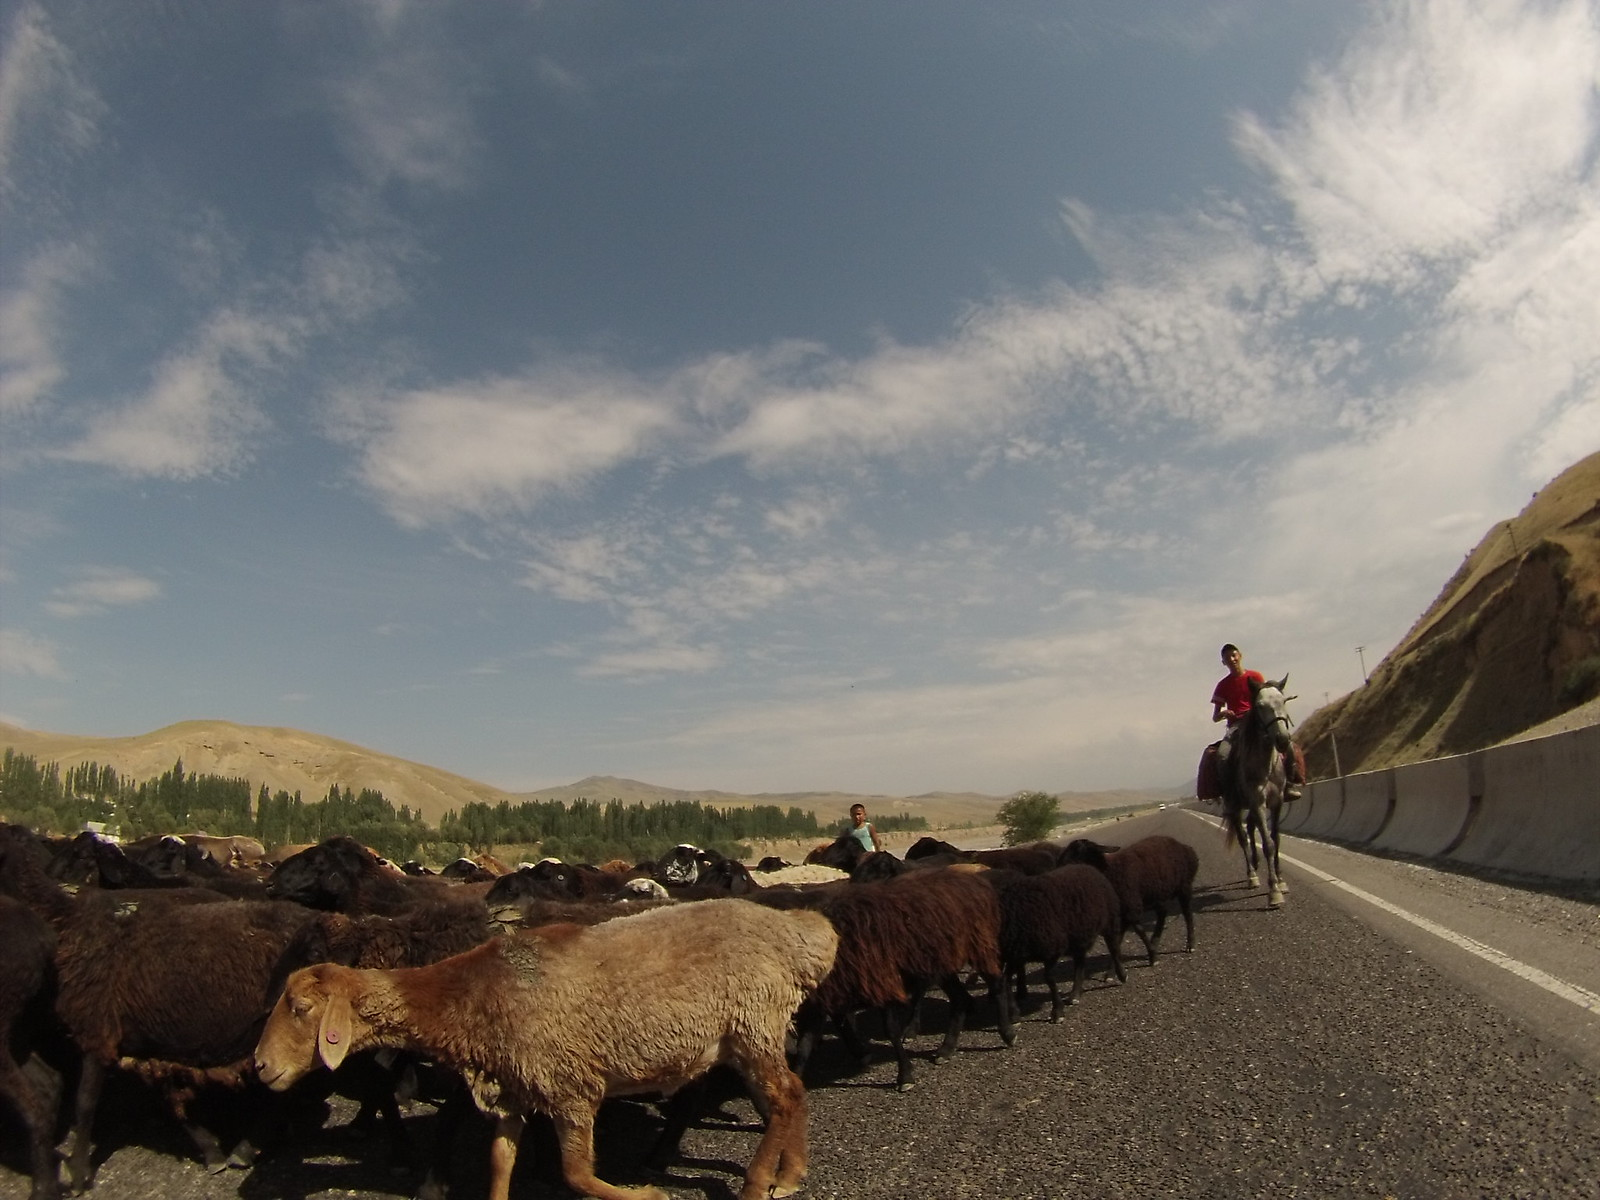 Sheeps on the road in Kyrgyzstan